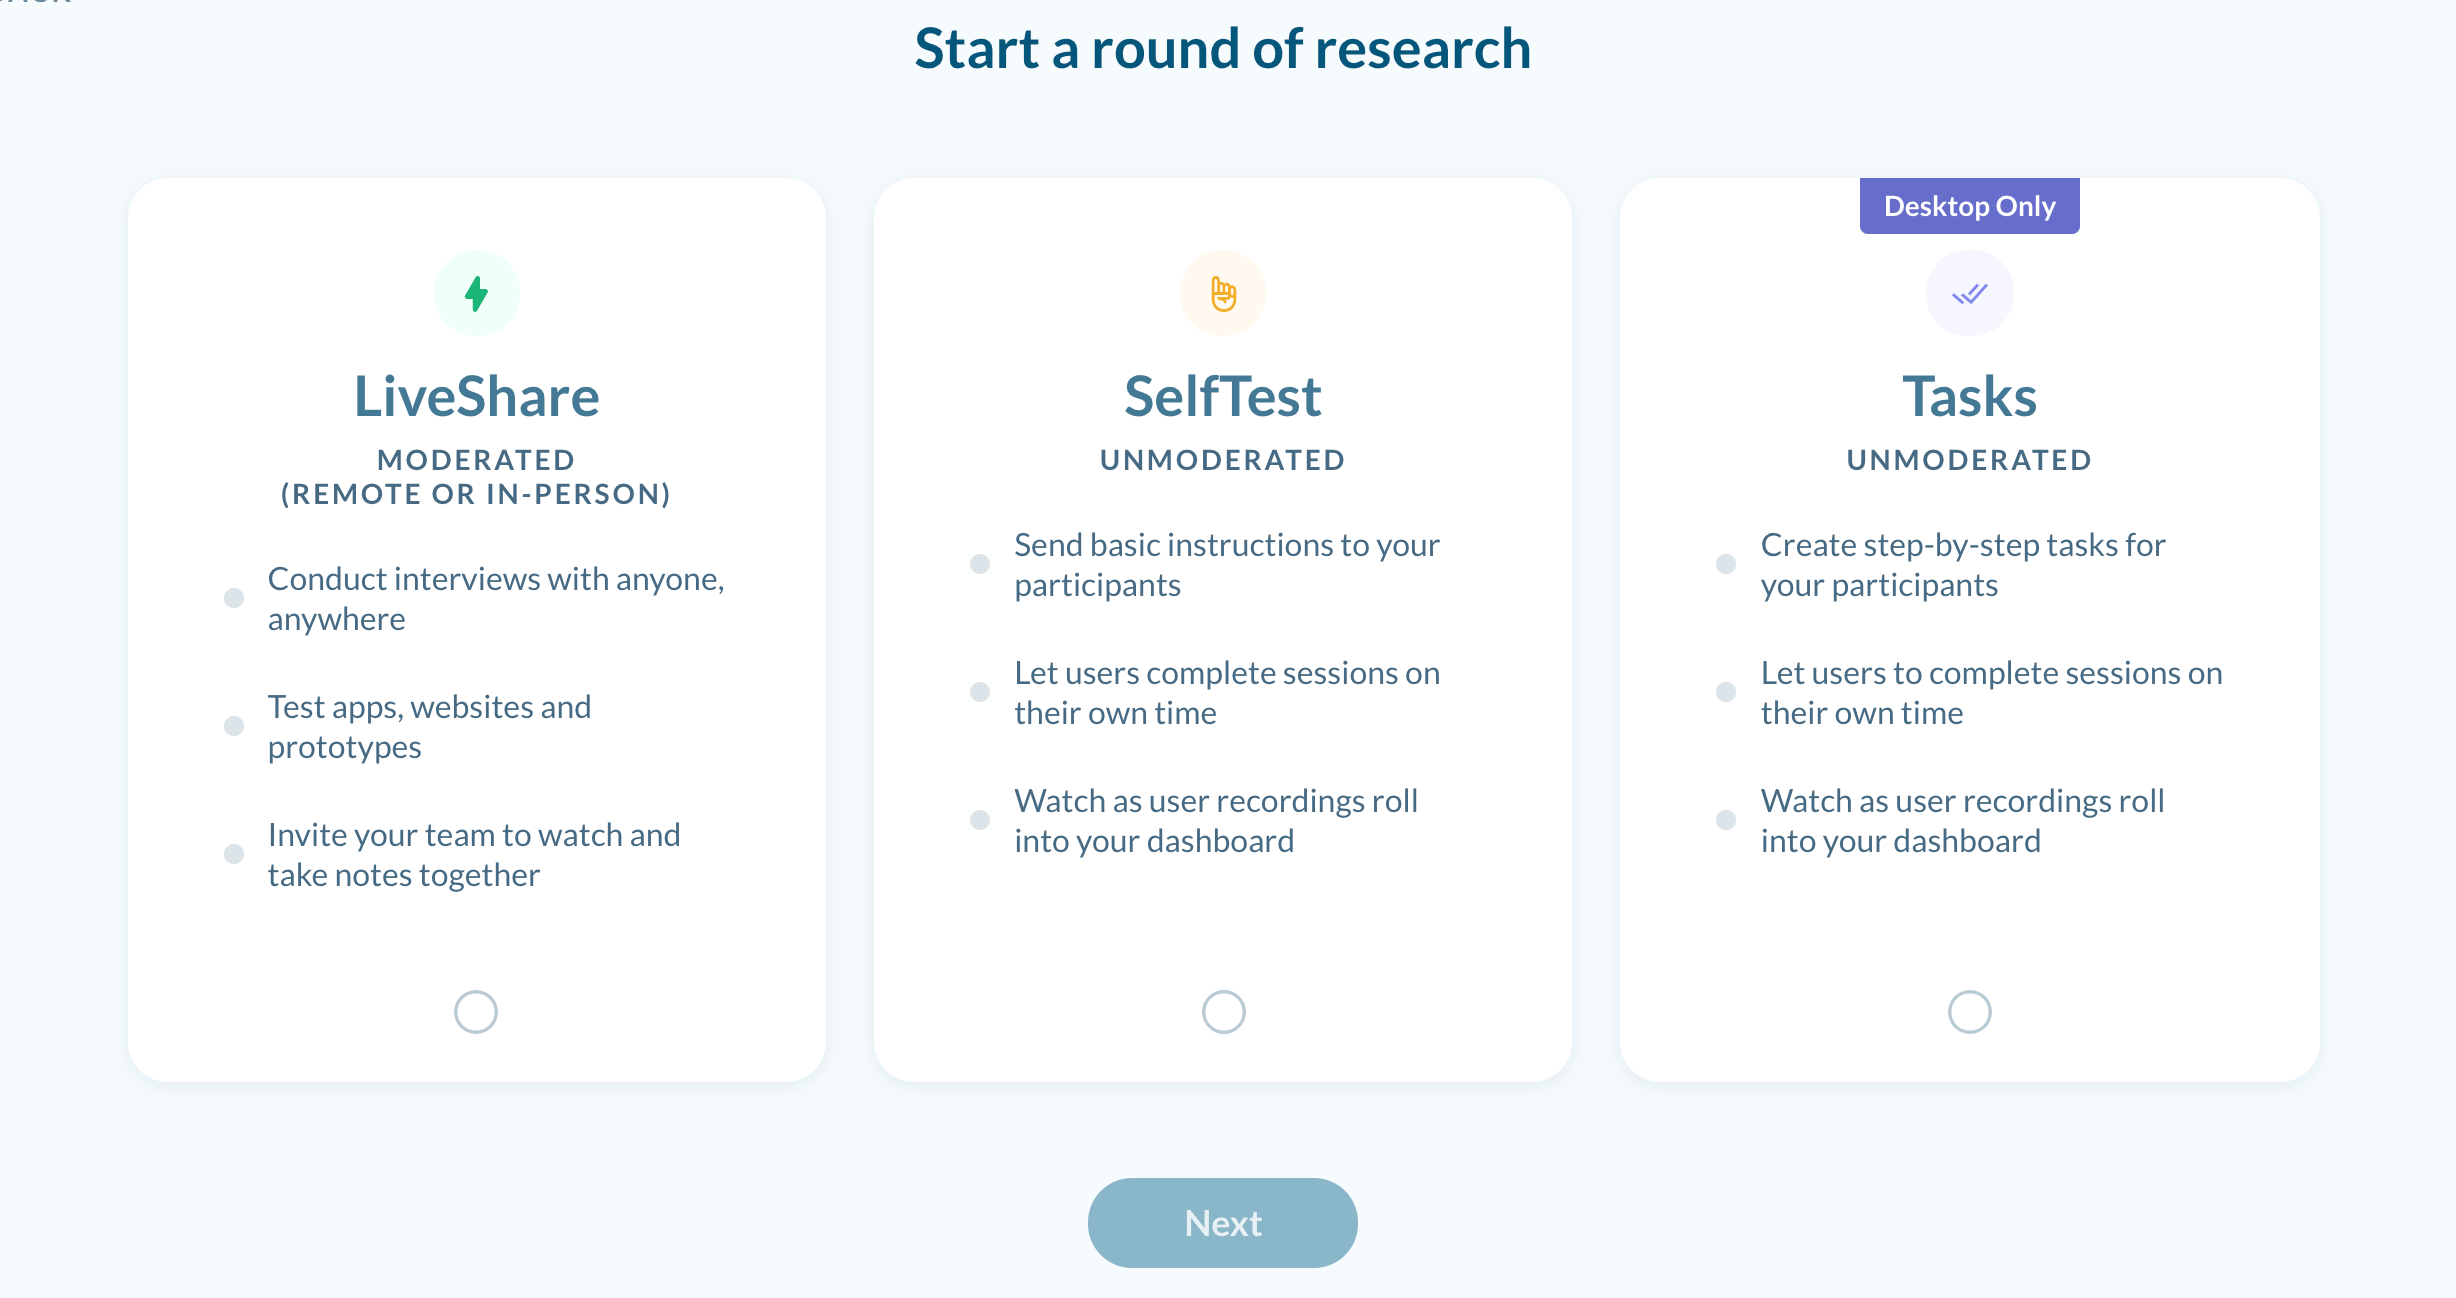 Choose the Type of Round - LiveShare, SelfTest or Tasks